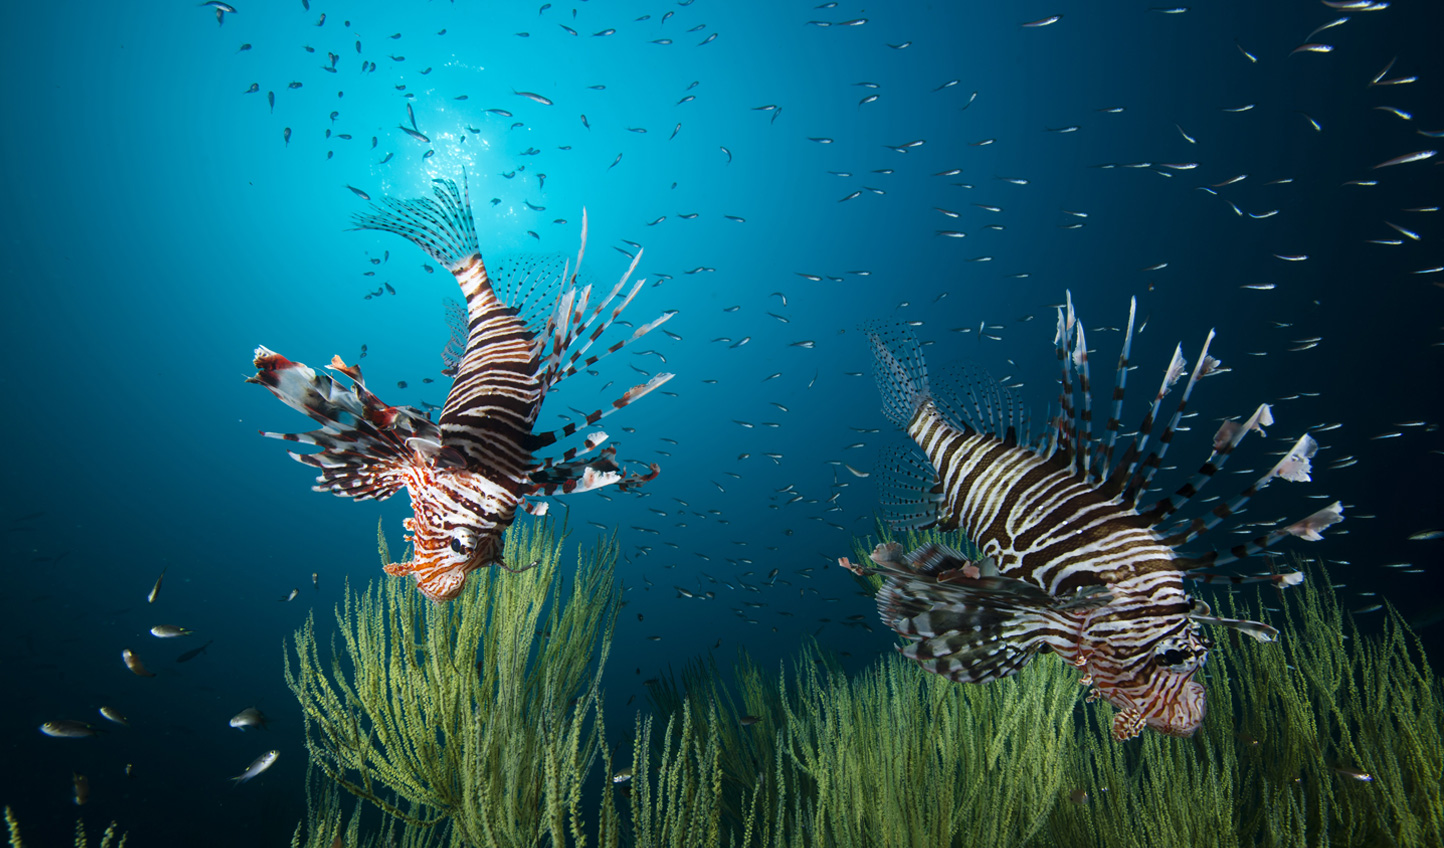 Dive into the water for a chance to see the Lion Fish in the Oman waters